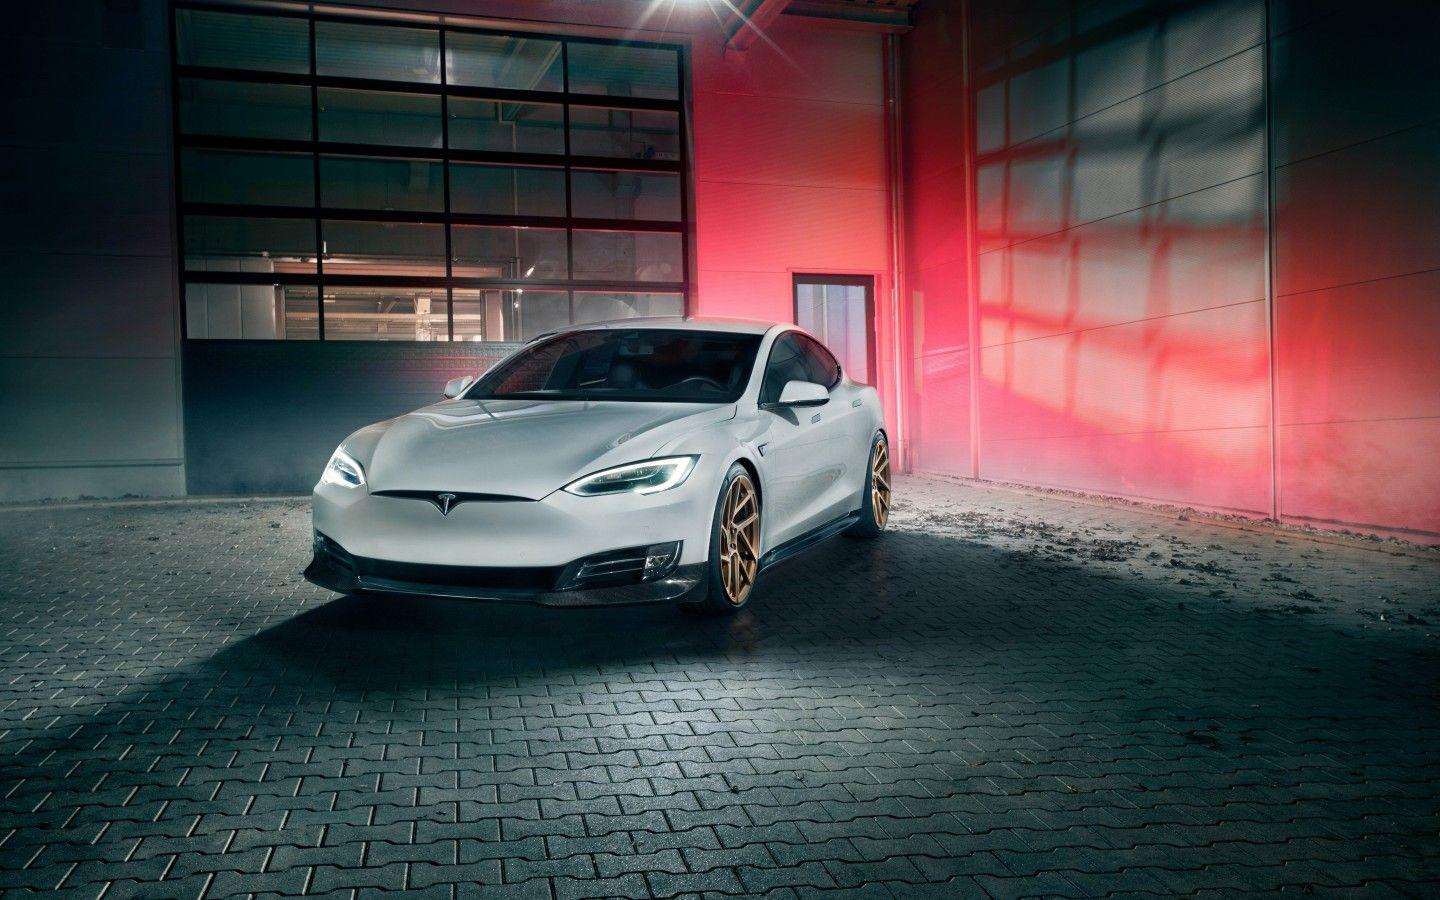 Download 1440x900 Tesla Model S By Novitec, White, Cars Wallpapers